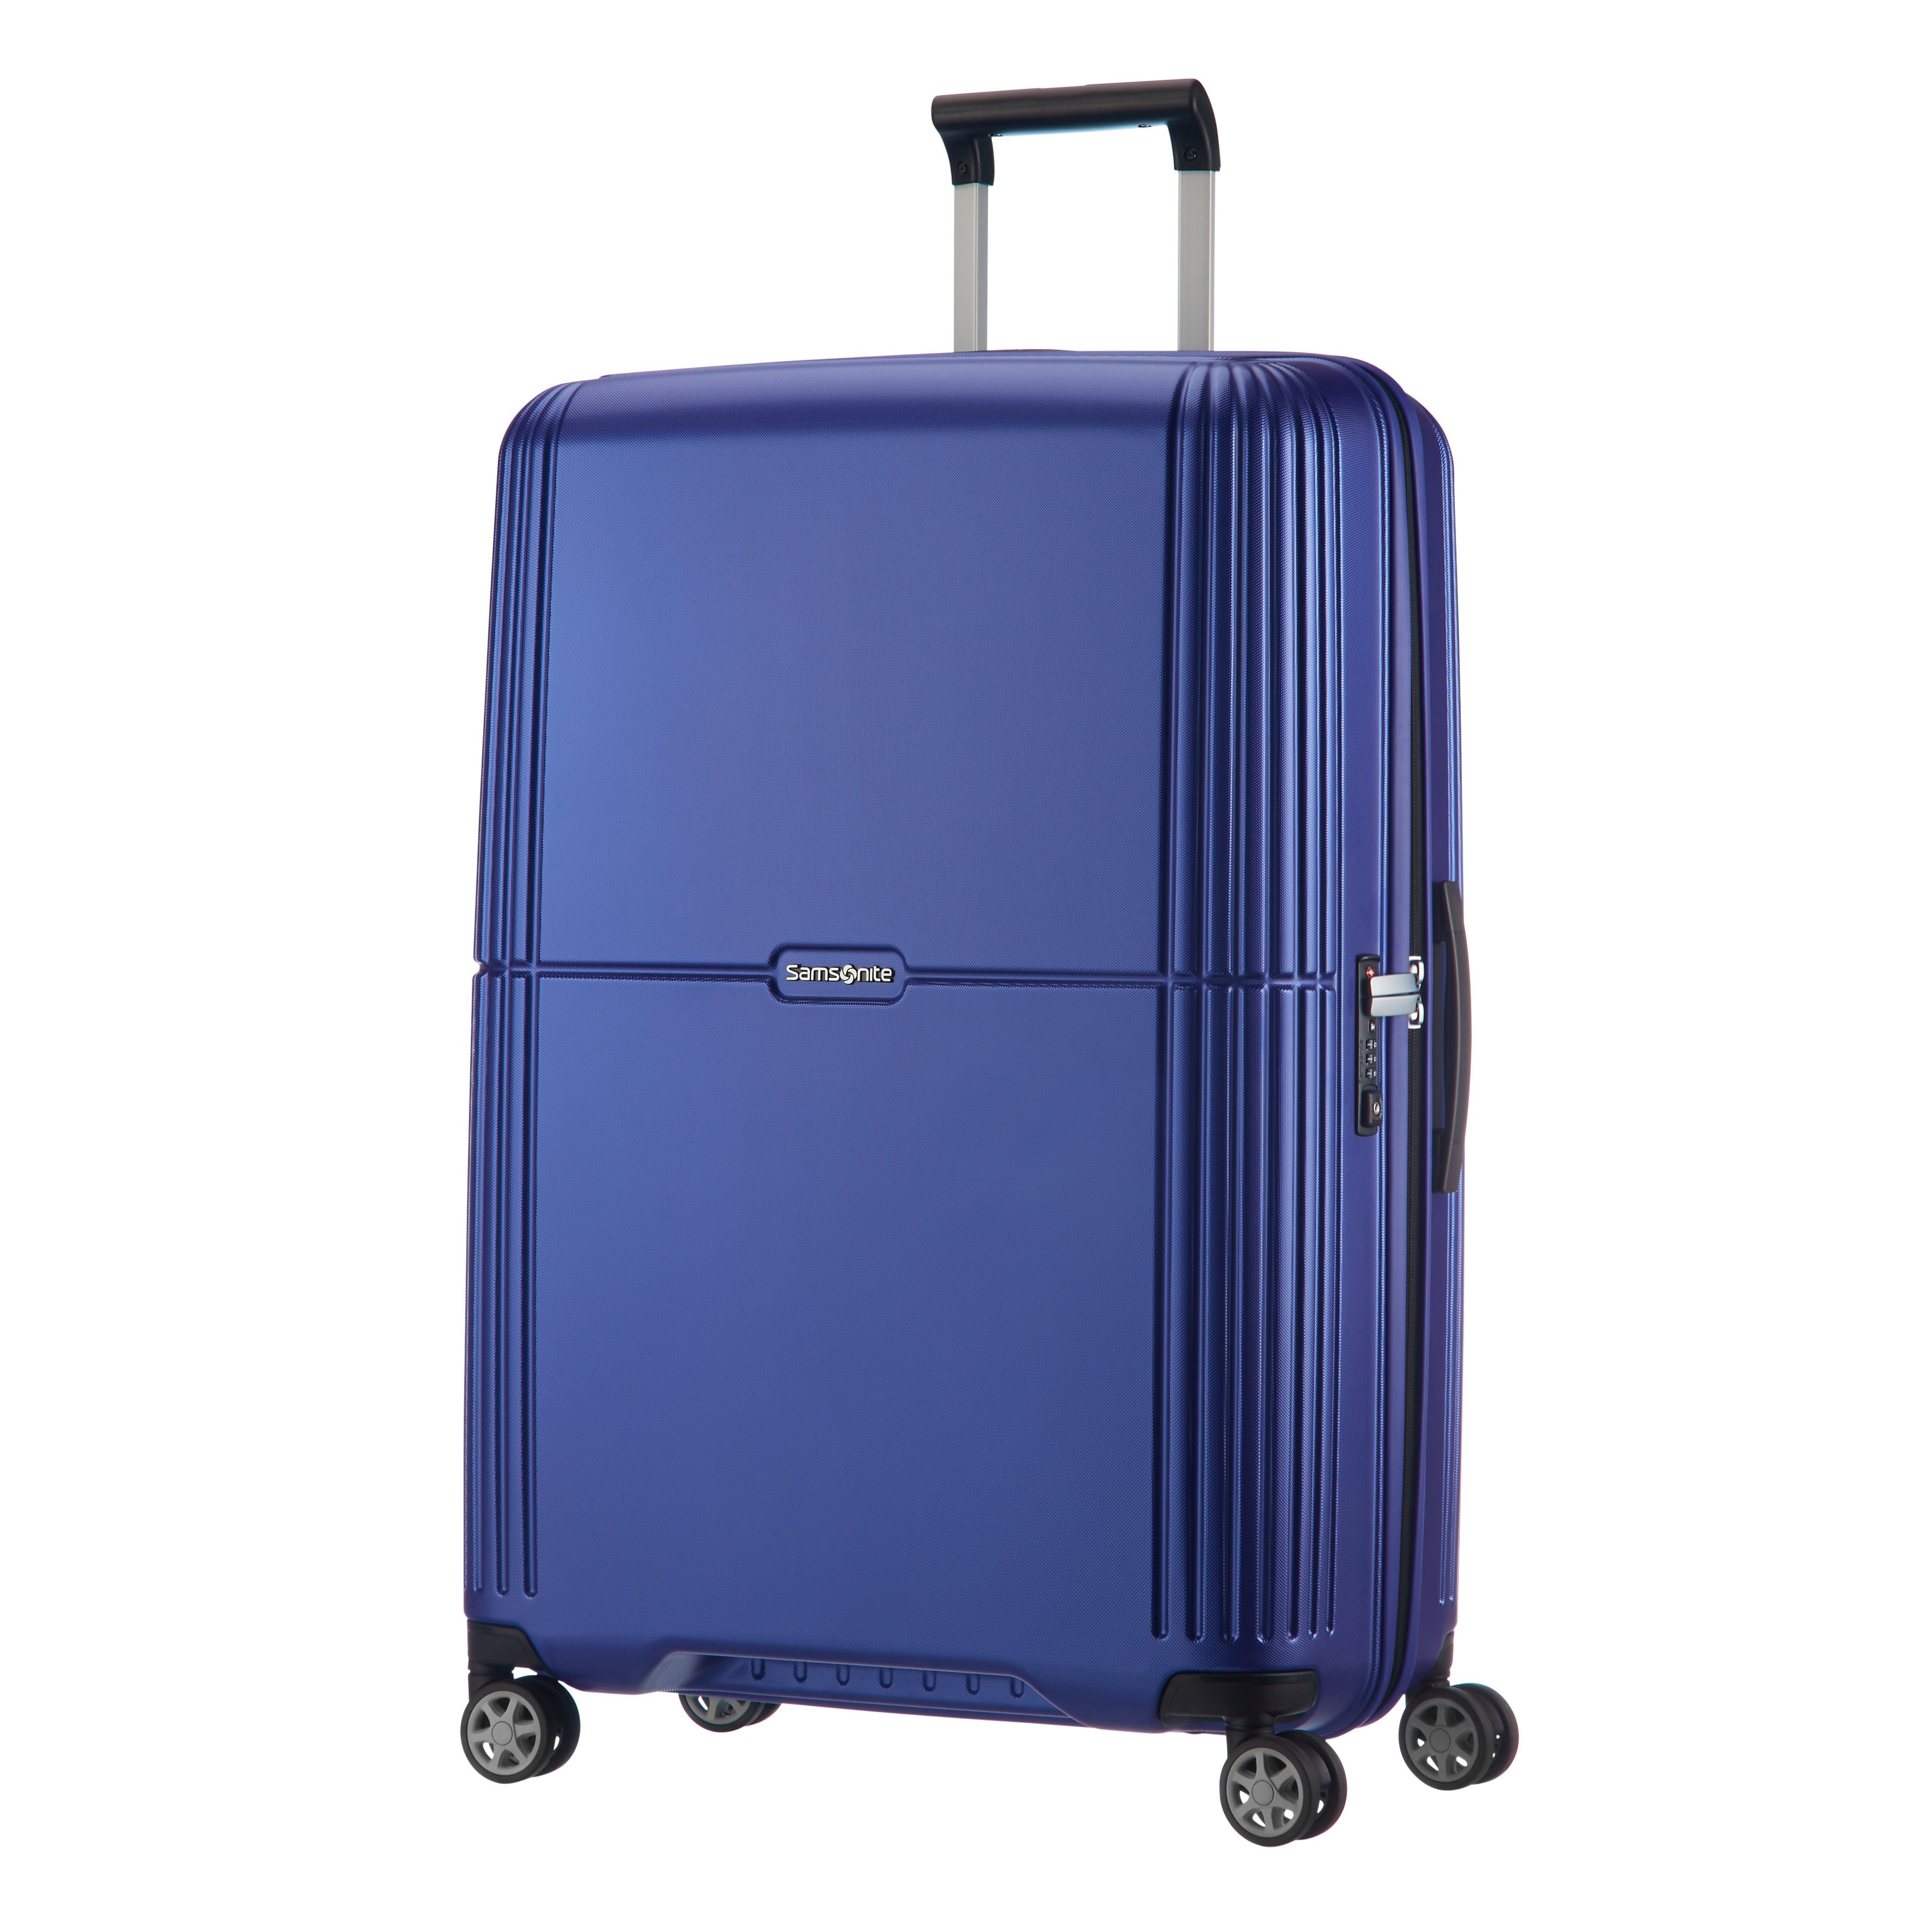 468660014d125 Yükle (3543x3543)Samsonite Orfeo 4 Wheel Spinner Large Suitcase -  75cm...then take a look at this 75cm 4 wheel spinner suitcase from  Samsonite&am... ...